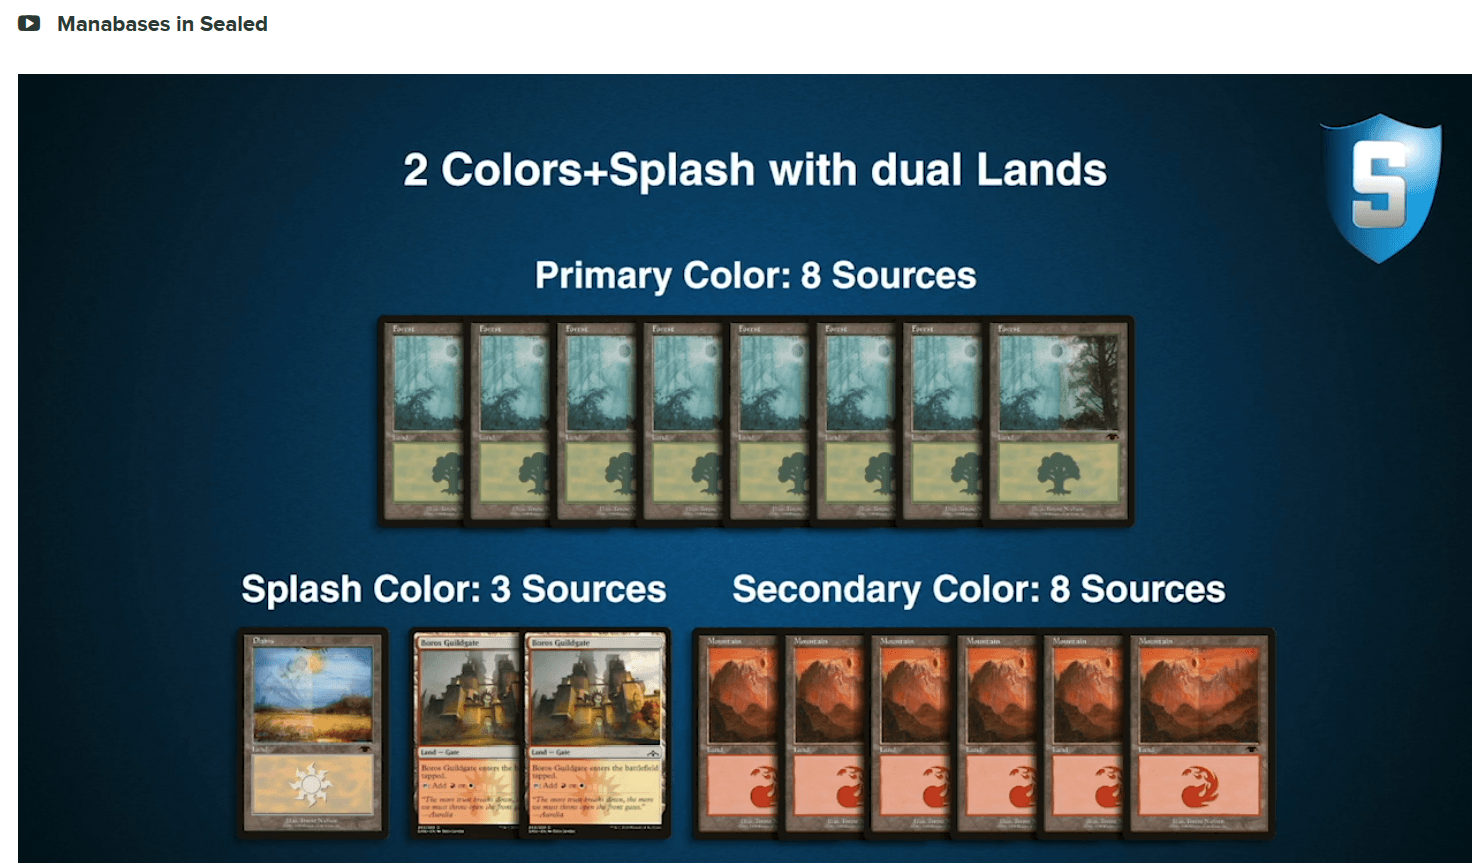 Graphic showing mana bases for sealed